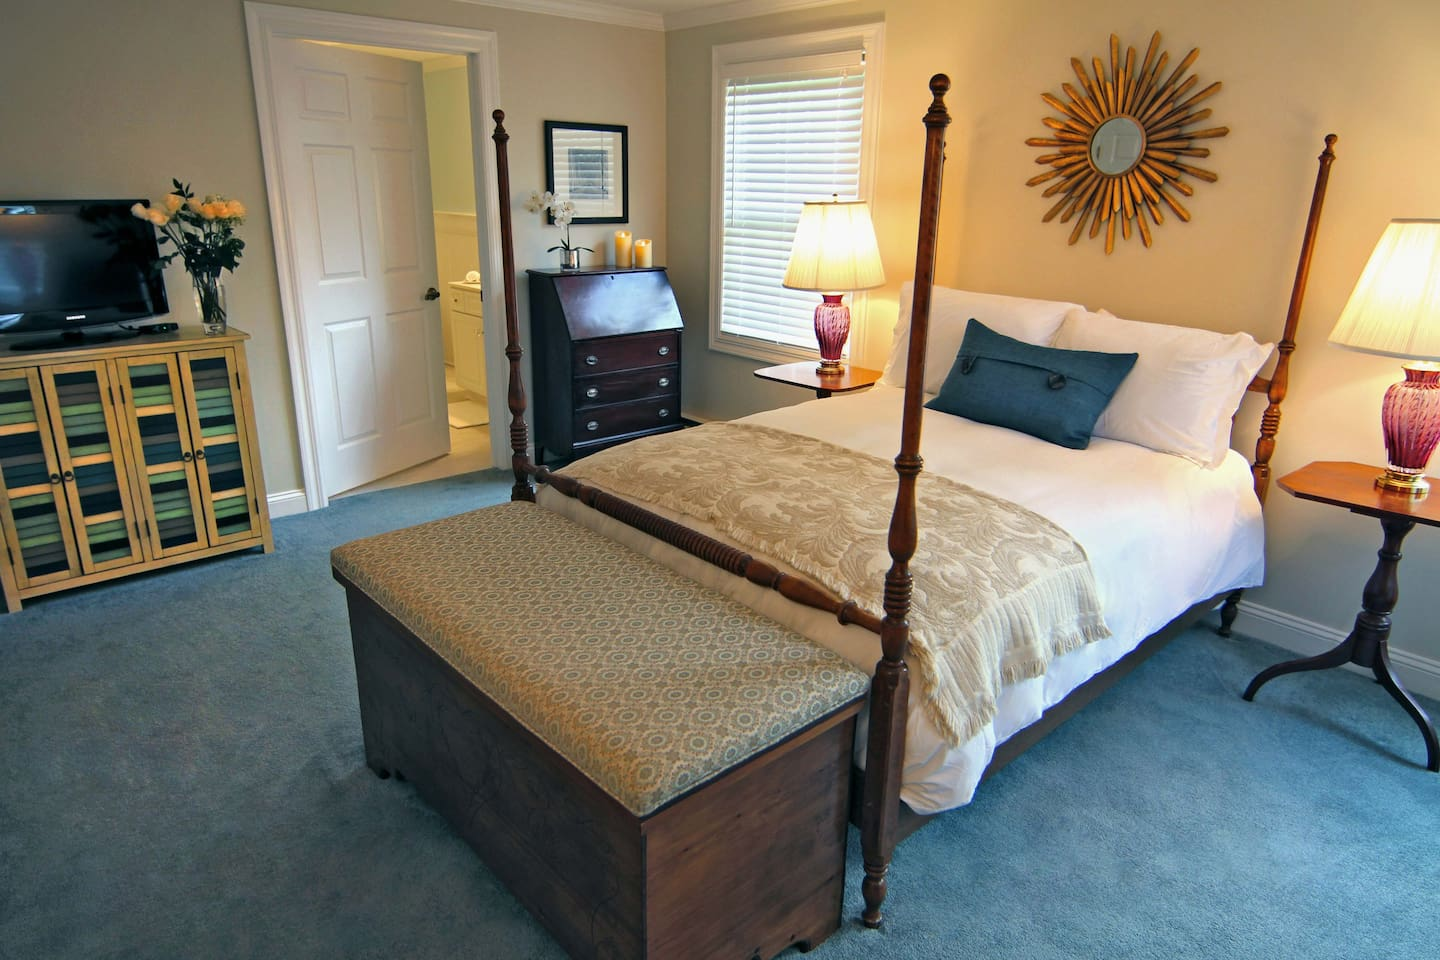 Room Five is located on our first floor, at the rear of the house. It is a private bedroom with a private bathroom and standup shower.  The room is spacious and has views of the backyard.